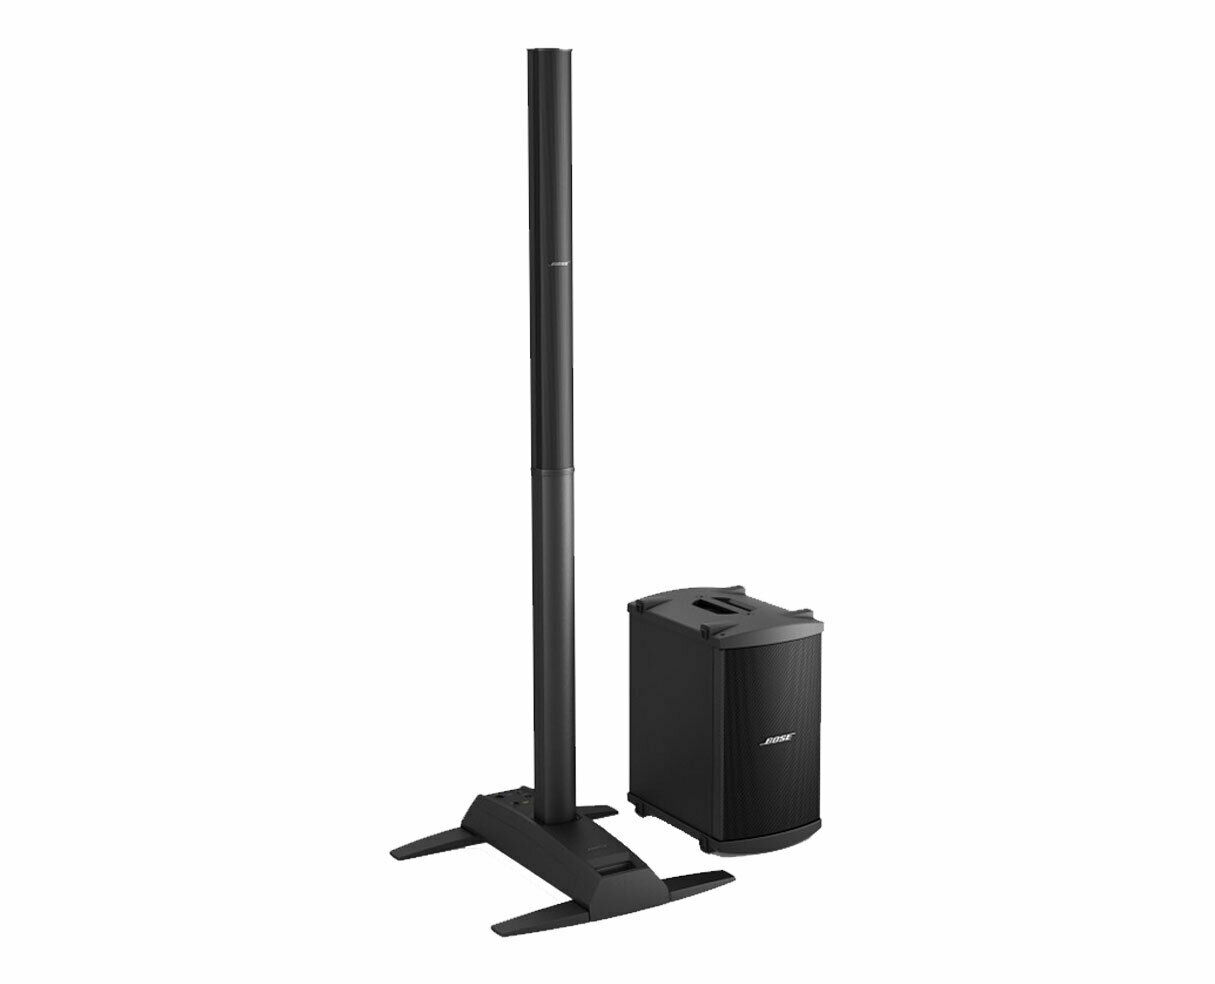 Bose L1 Model 1S Powered Speaker Array System + Active B2 Bass Module PROAUDIOST. Buy it now for 1259.00